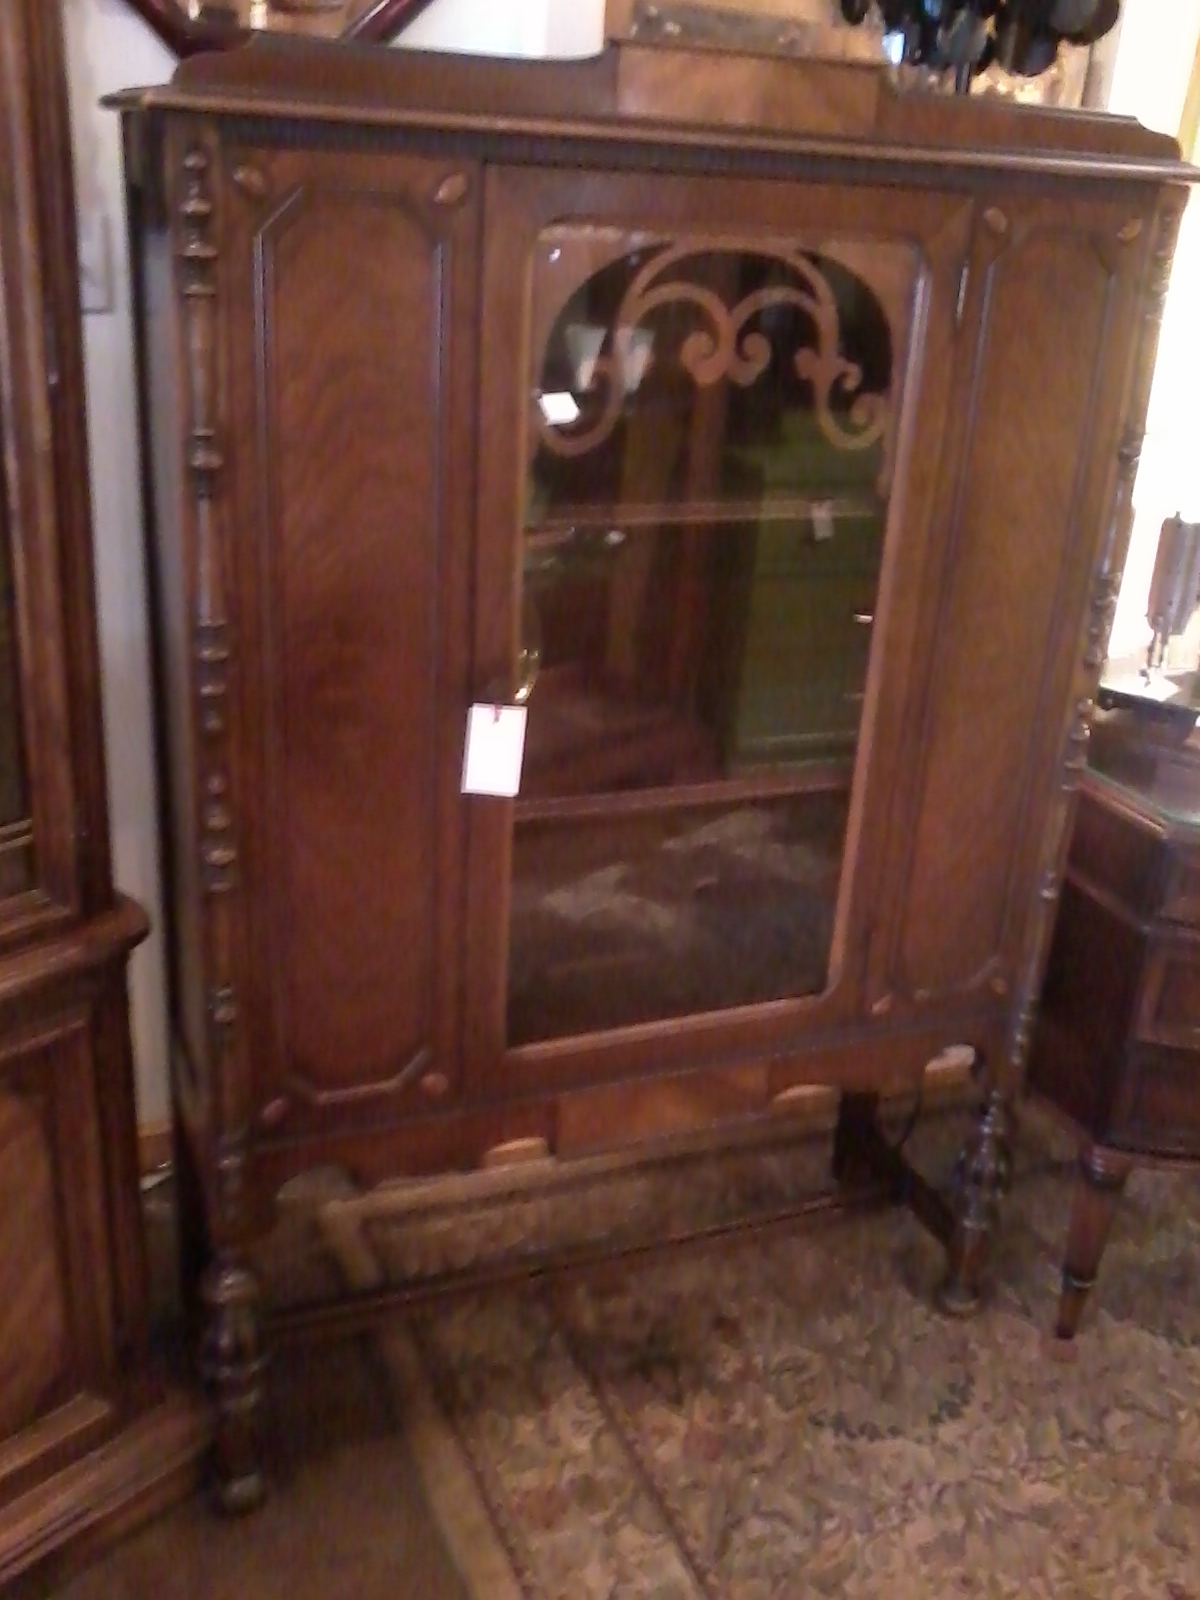 1920s Antique Curio Cabinet - Chic & Unique Furniture: 1920s Antique Curio Cabinet